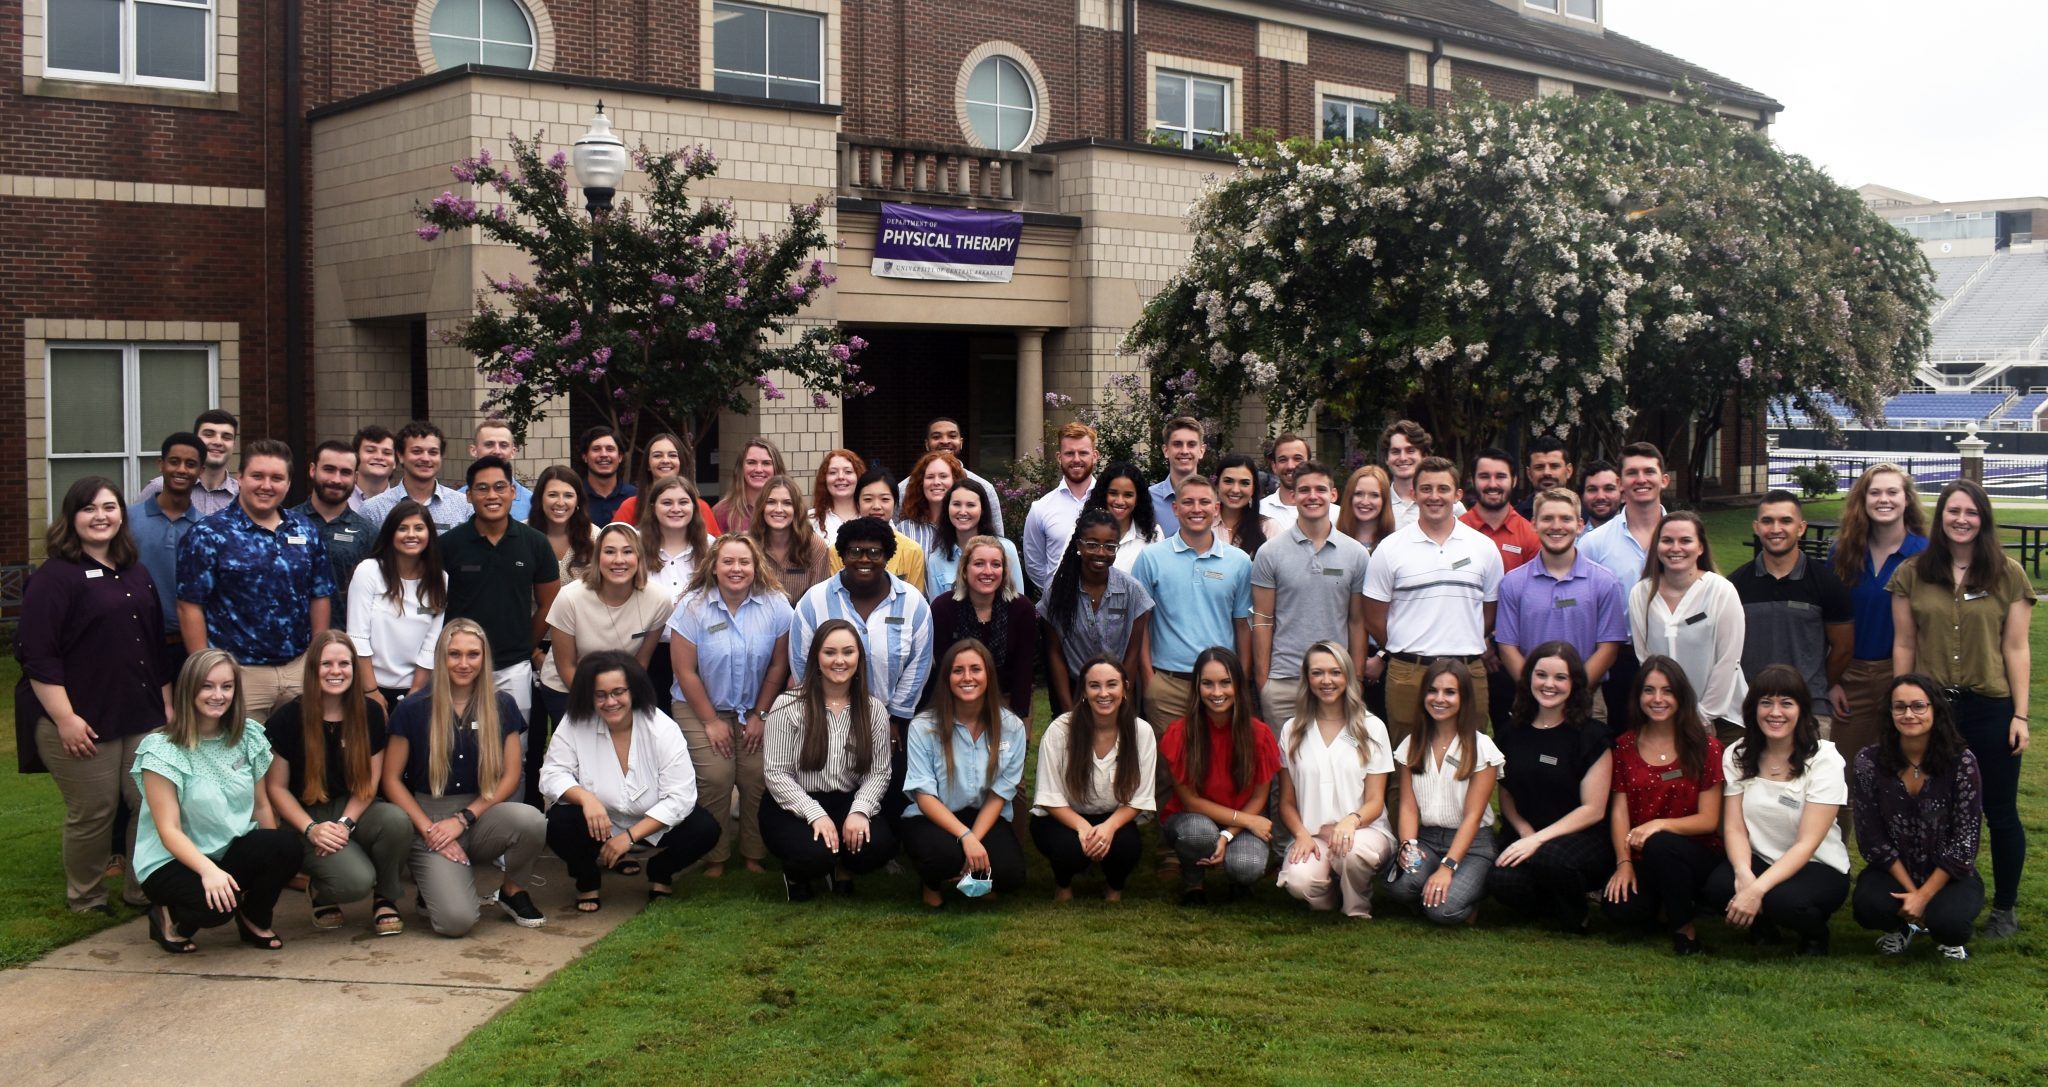 Large group photo of class of 2021-2024 outside in front of the PT Center